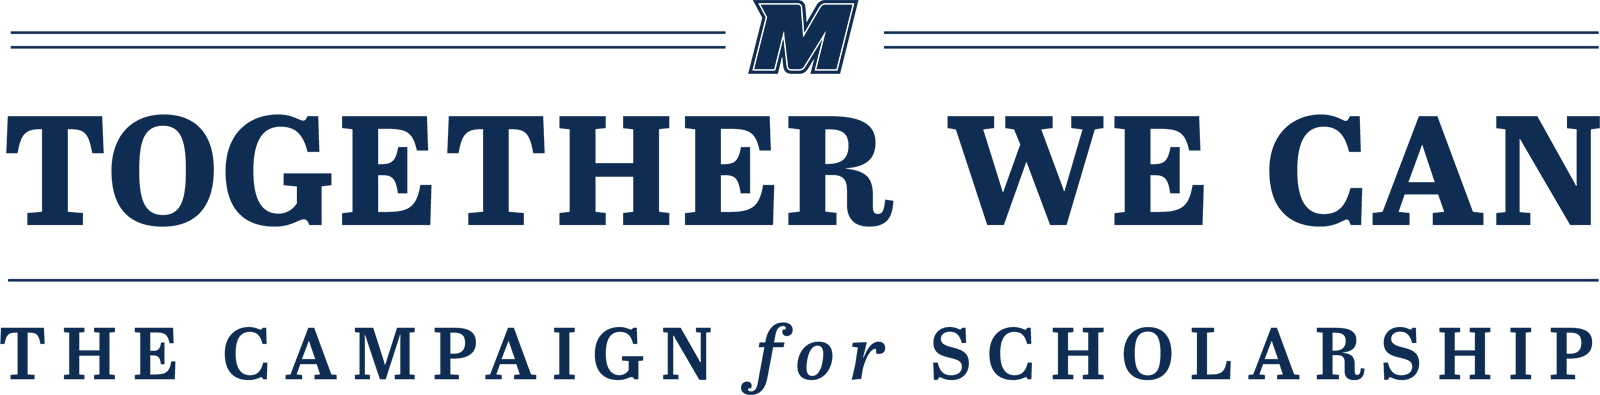 Together We Can, The Campaign for Scholarship